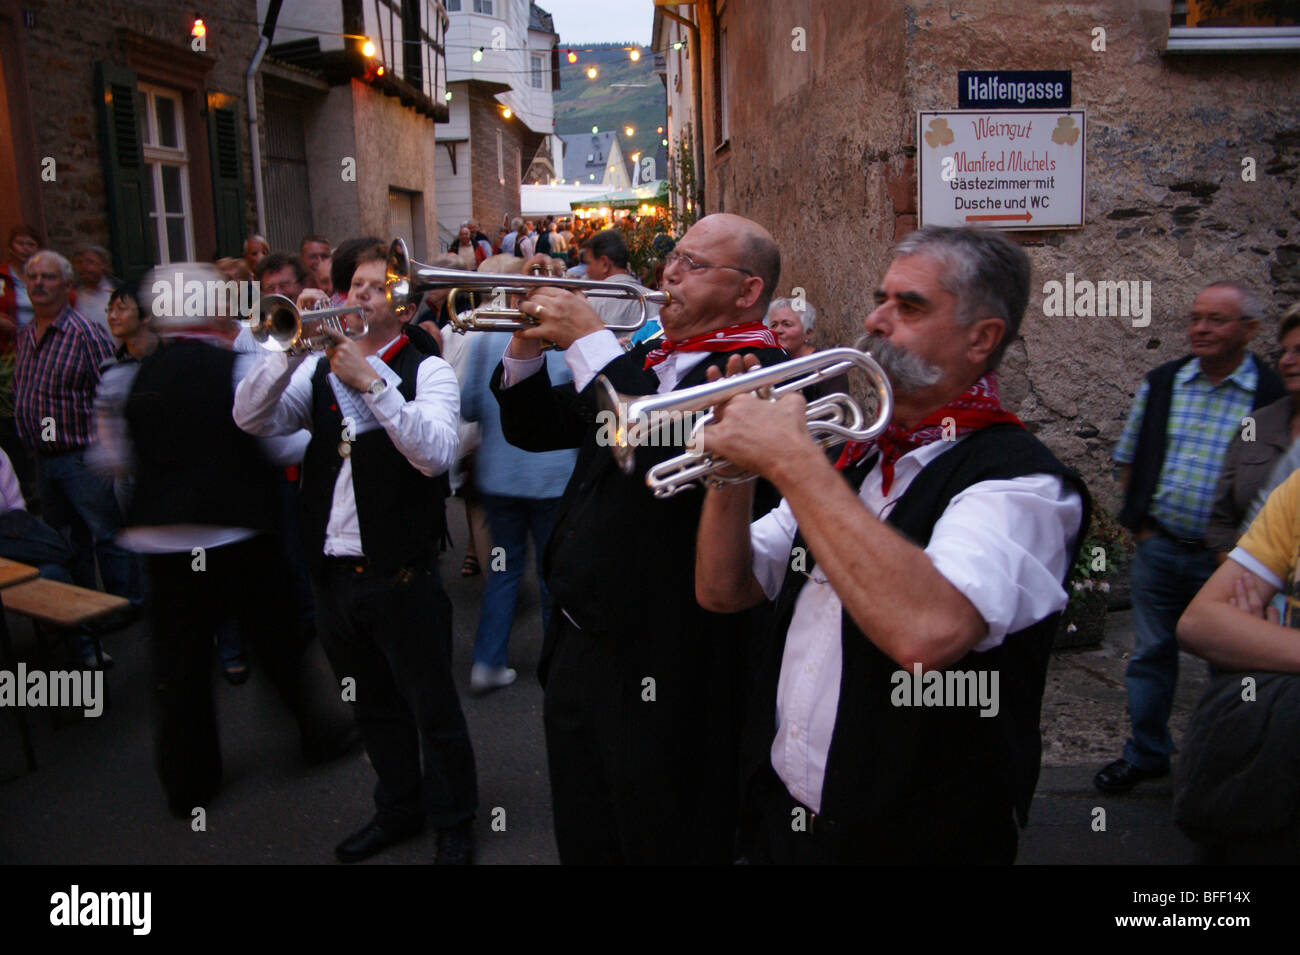 trumpeters-at-the-street-wine-festival-wolf-near-traben-trarbach-mosel-BFF14X.jpg